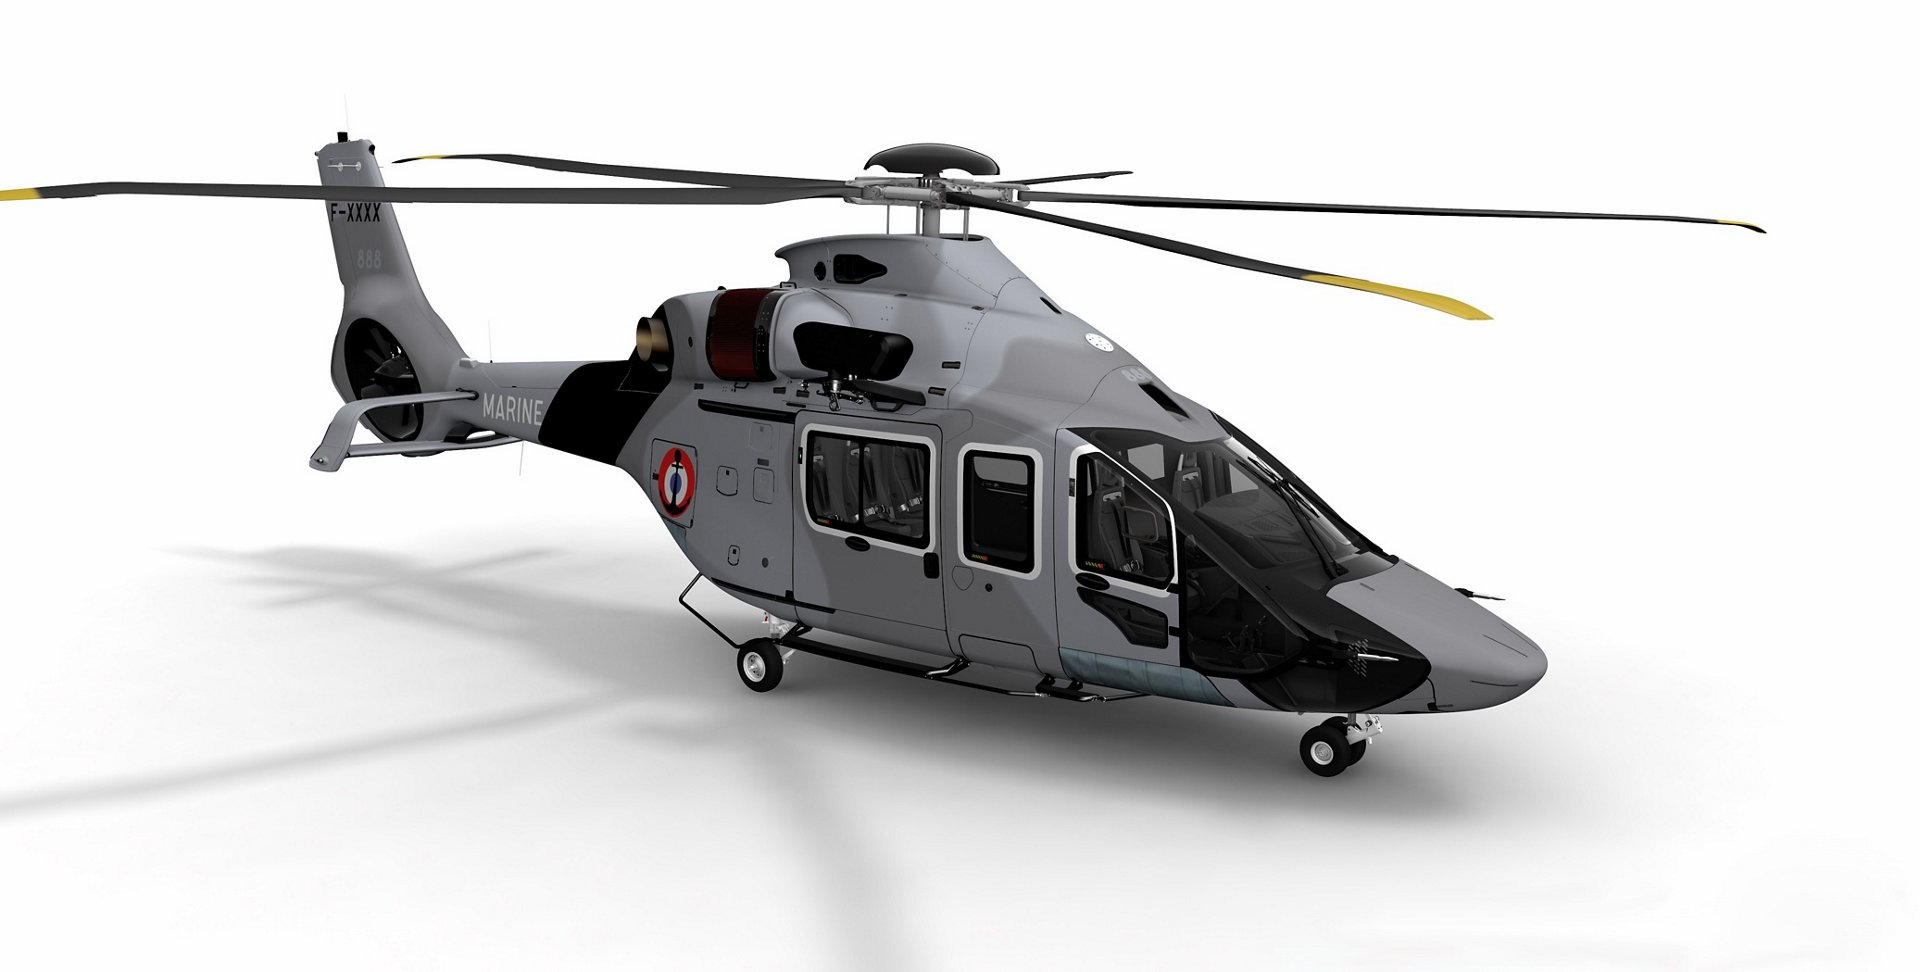 The French Armament General Directorate (DGA) has confirmed an option to  Airbus Helicopters, Babcock and Safran Helicopter Engines for two more H160s for the French Navy.